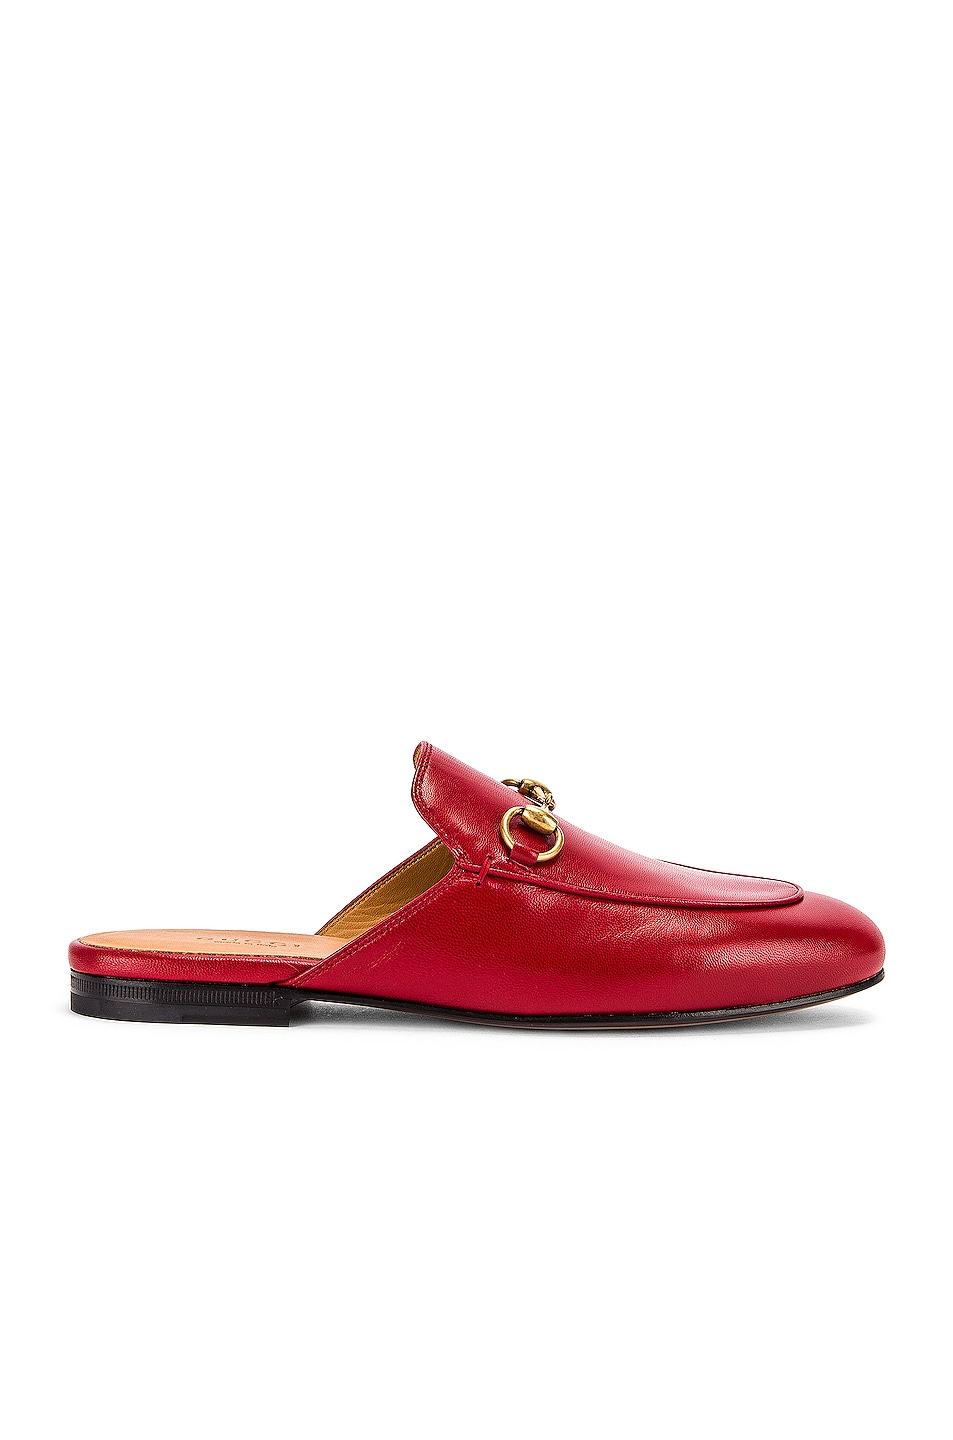 Image 1 of Gucci Princetown Slides in Hibiscus Red